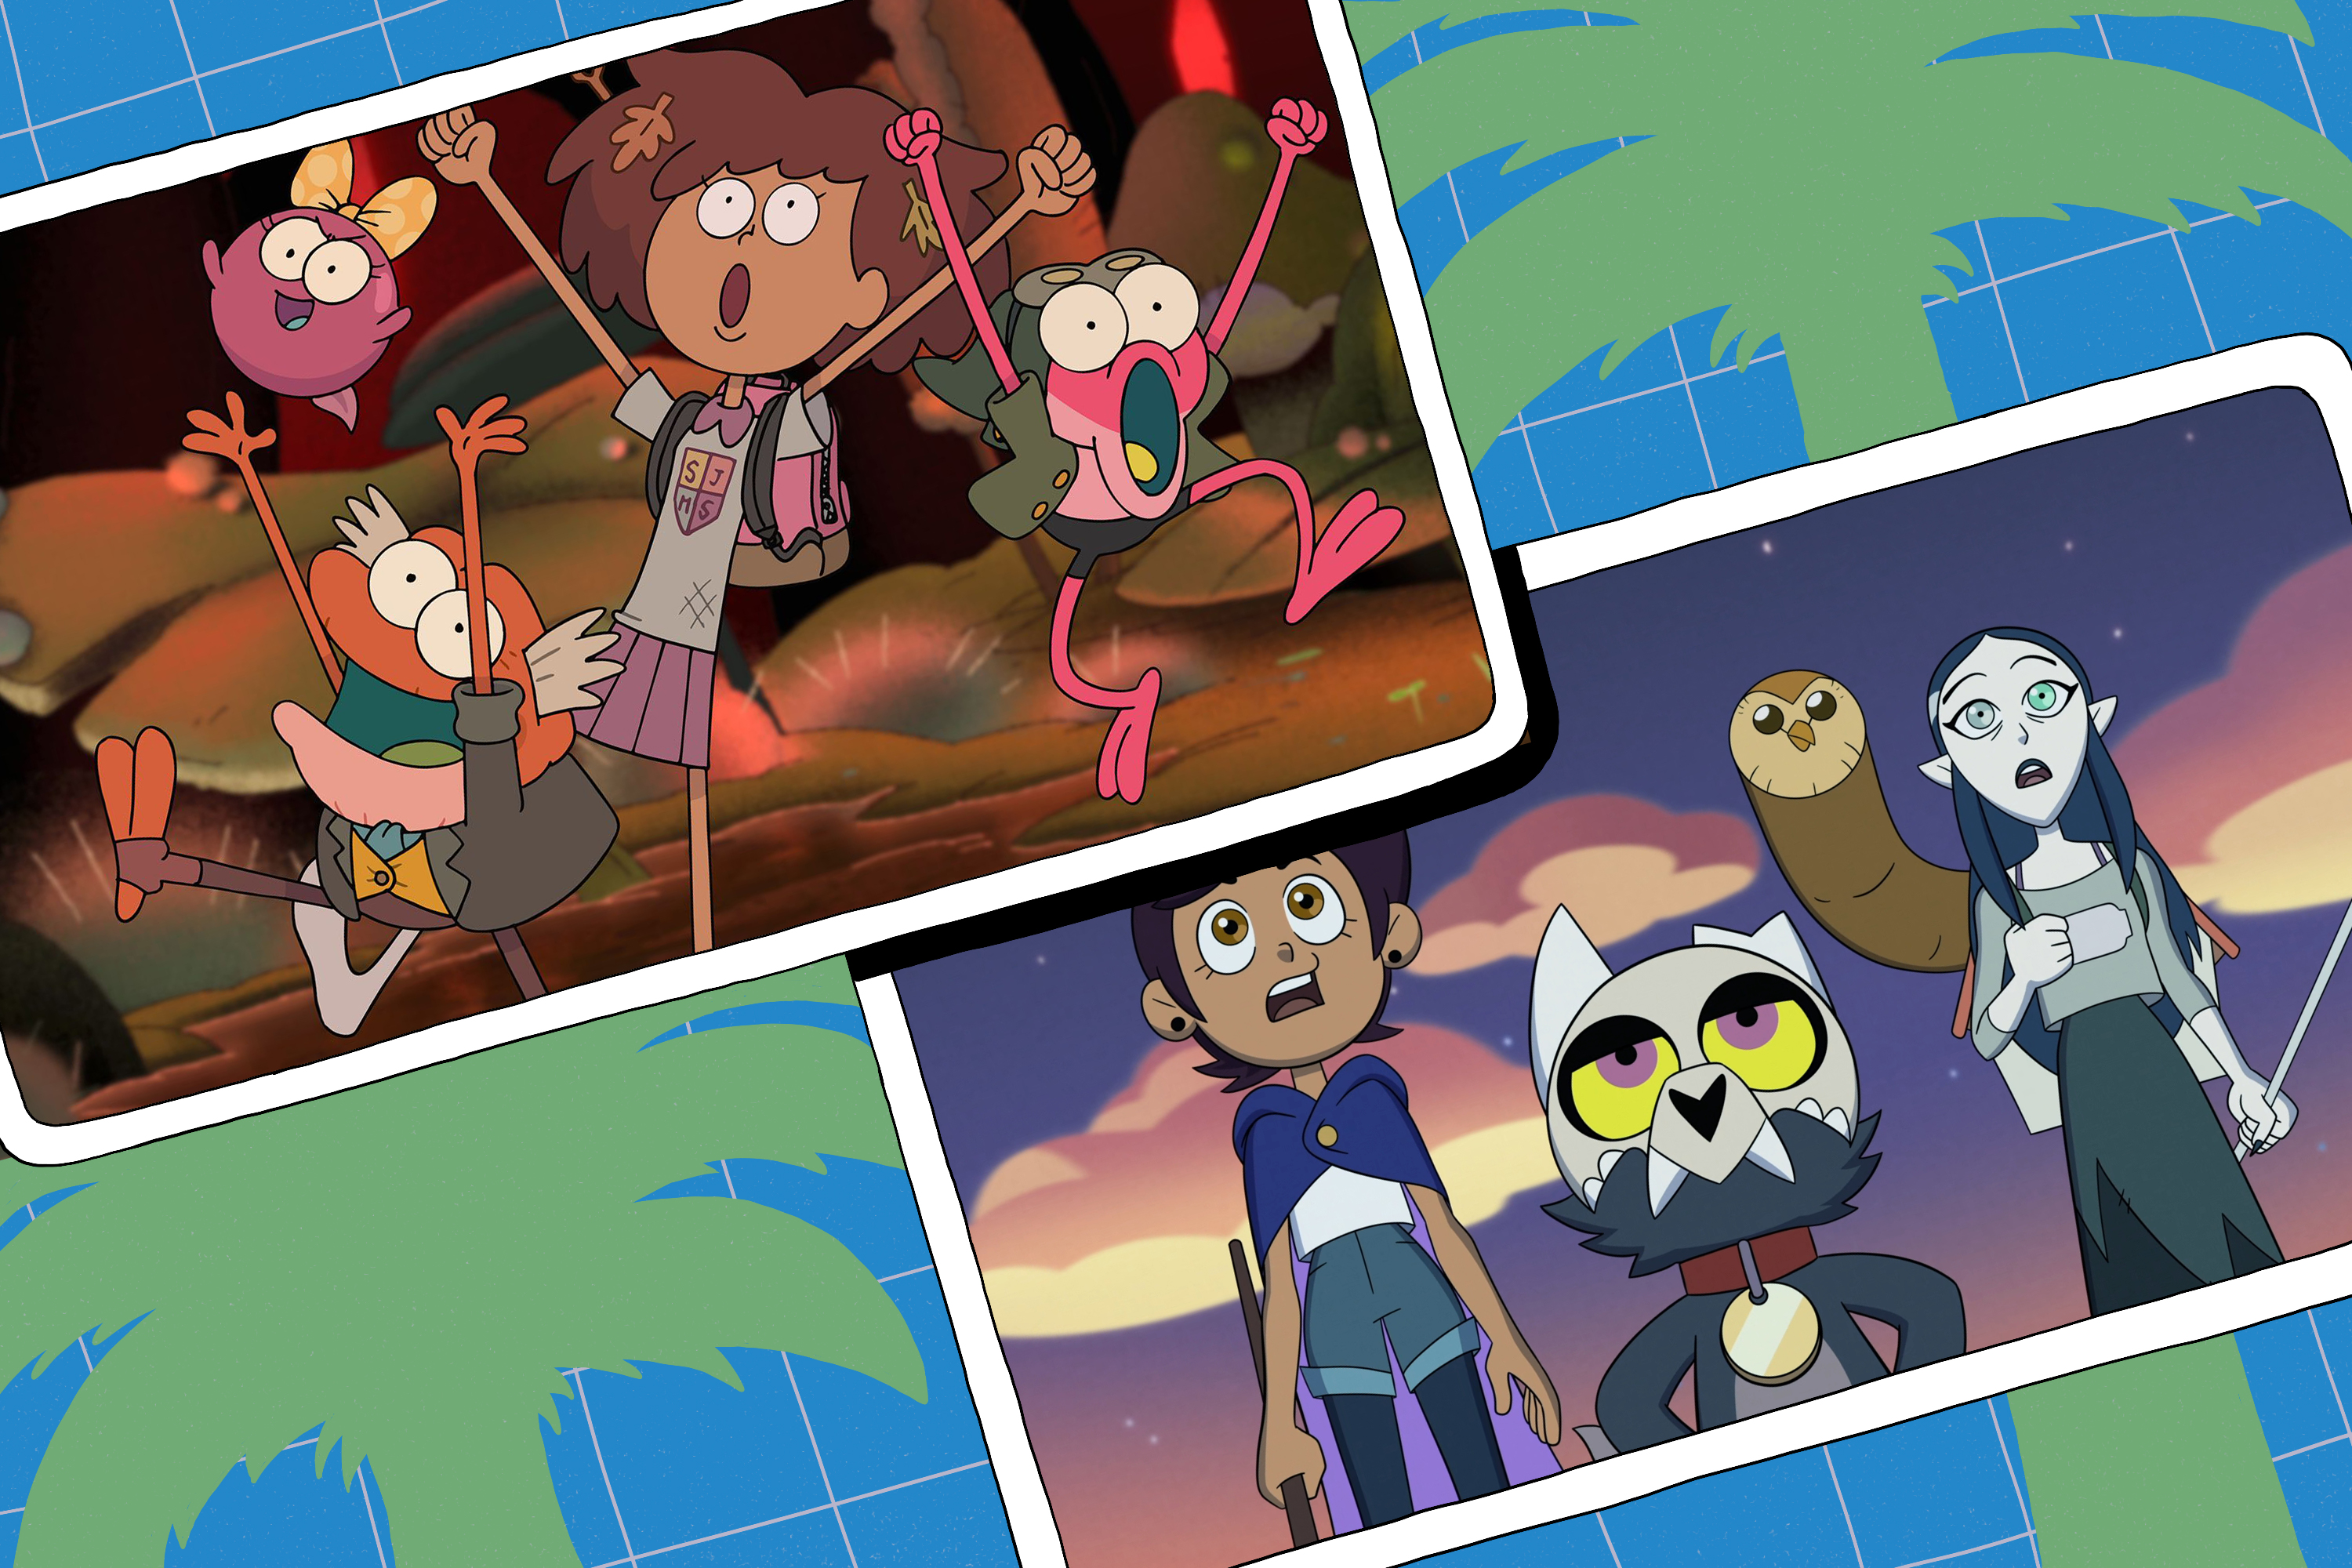 The Owl House and Amphibia stills